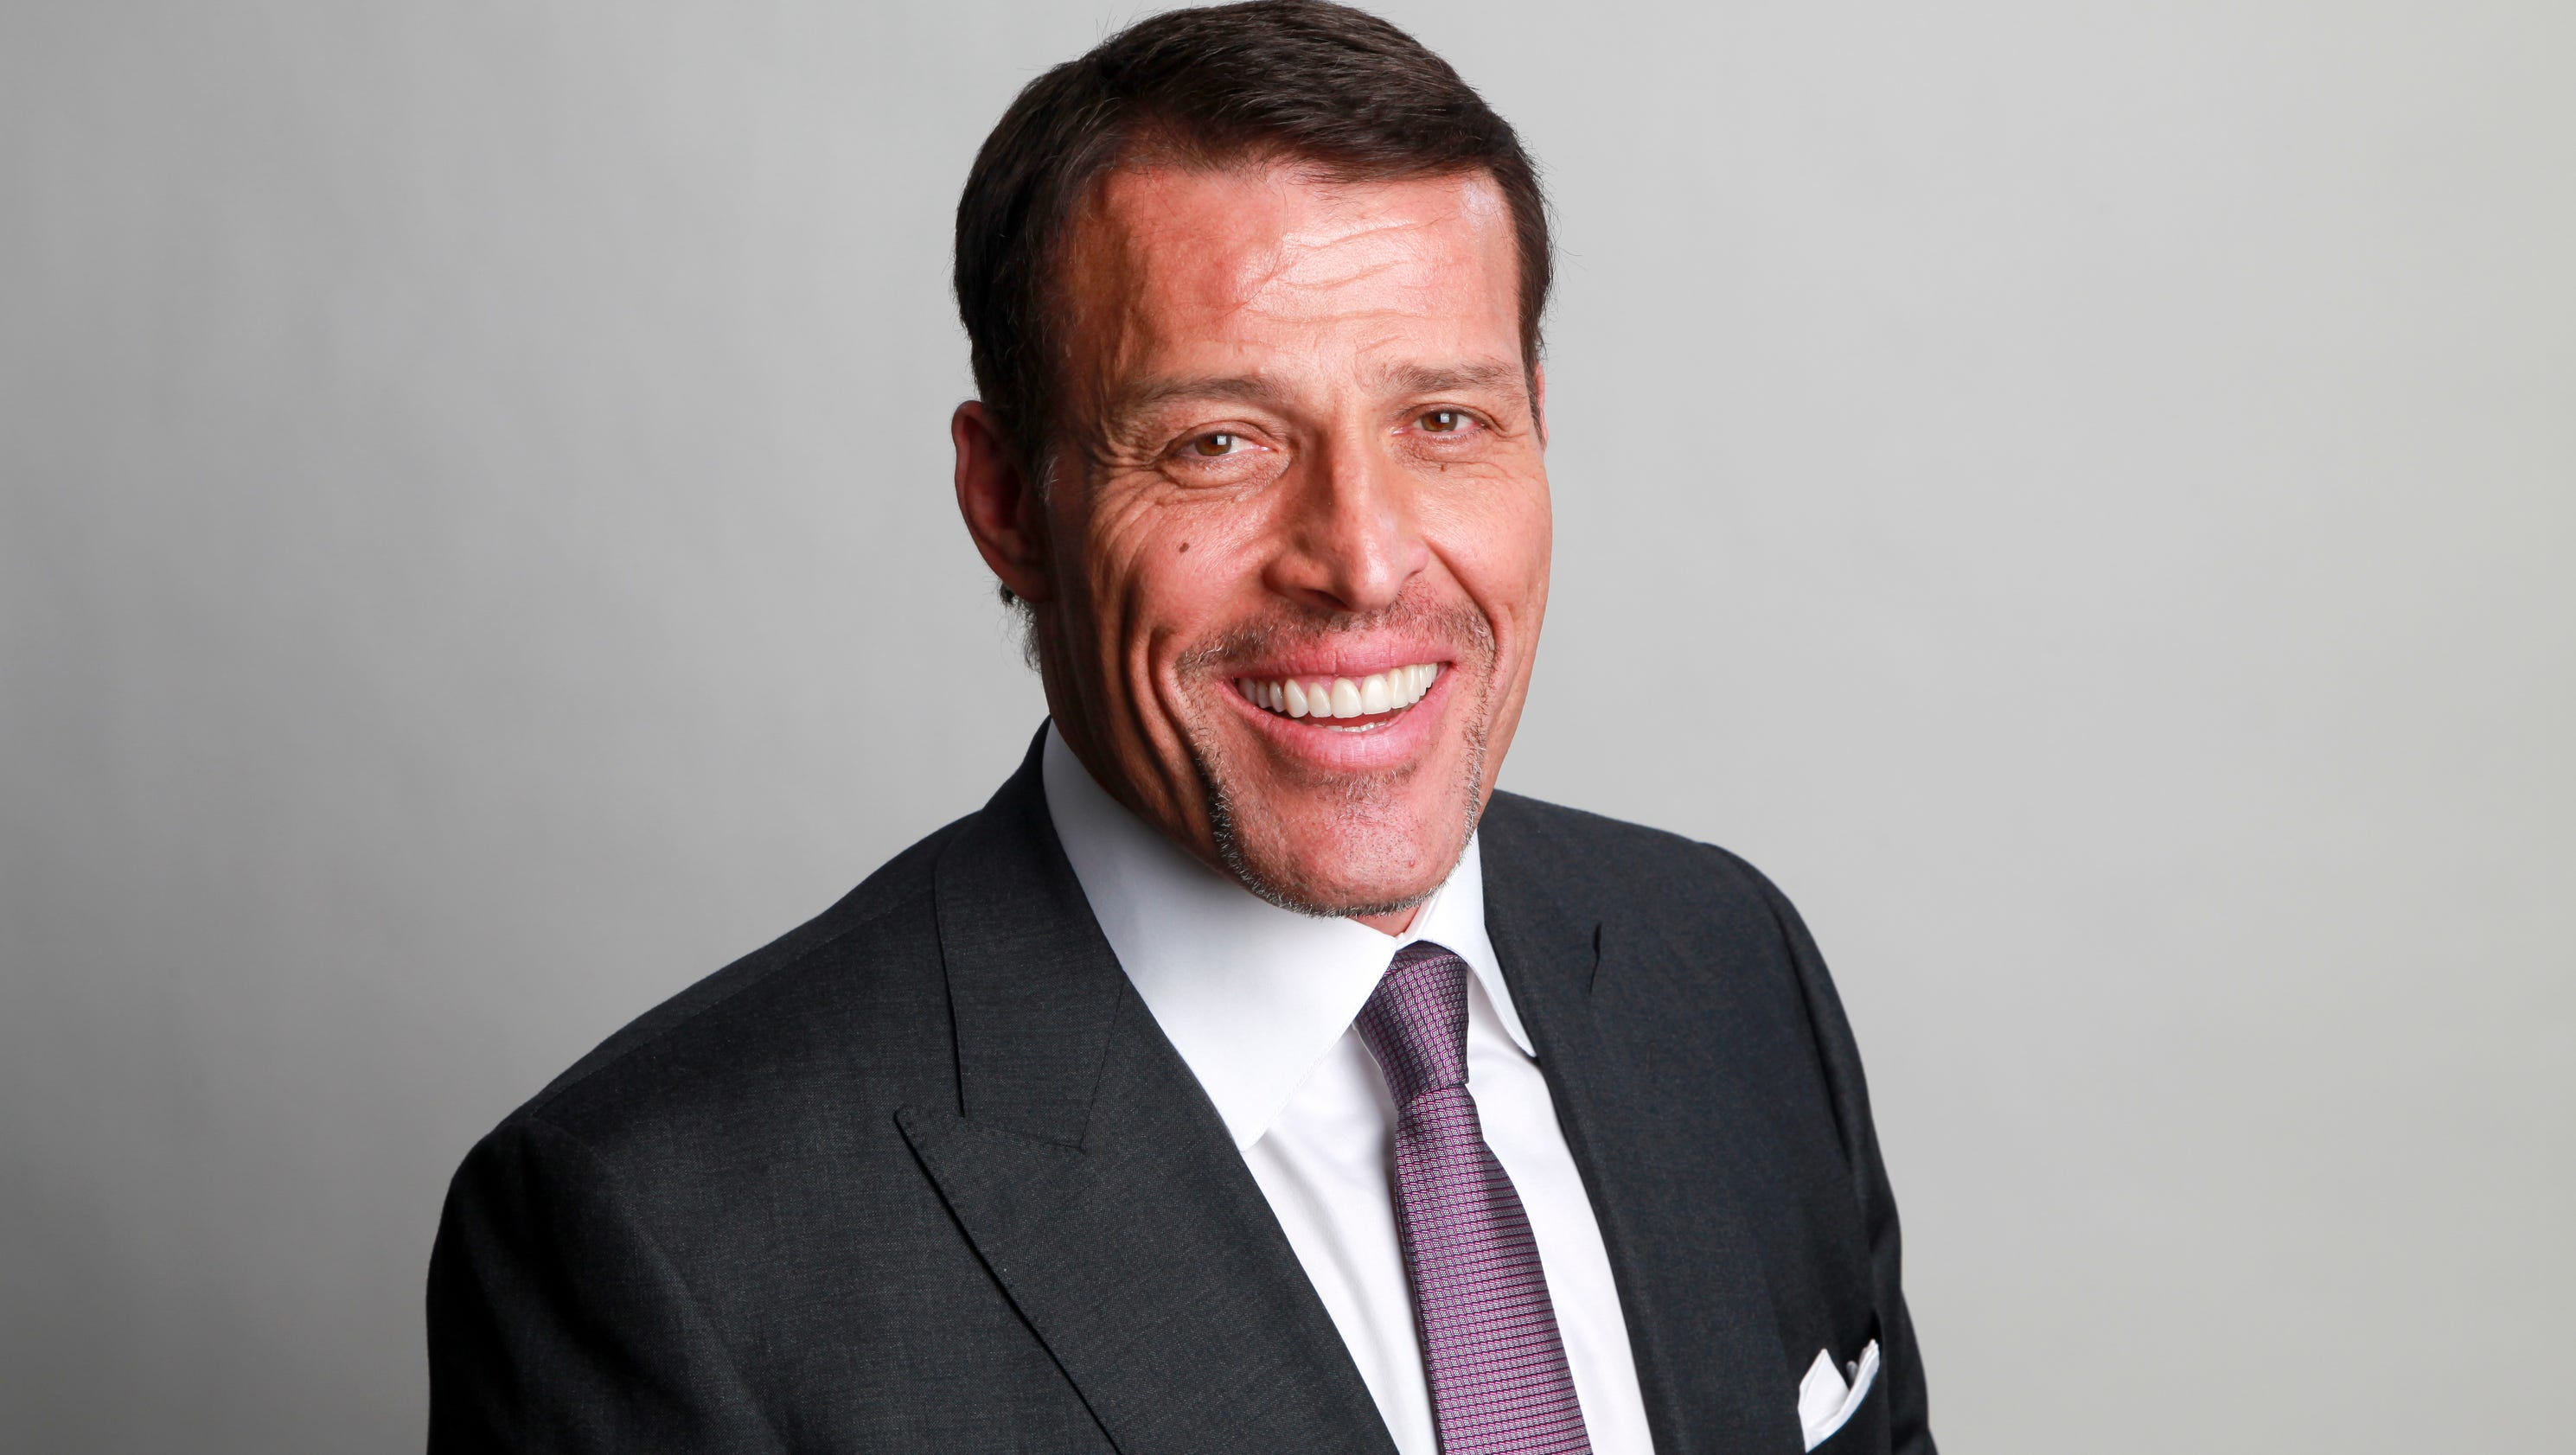 Tony Robbins Quotes Will Inspire You & Change Your Life